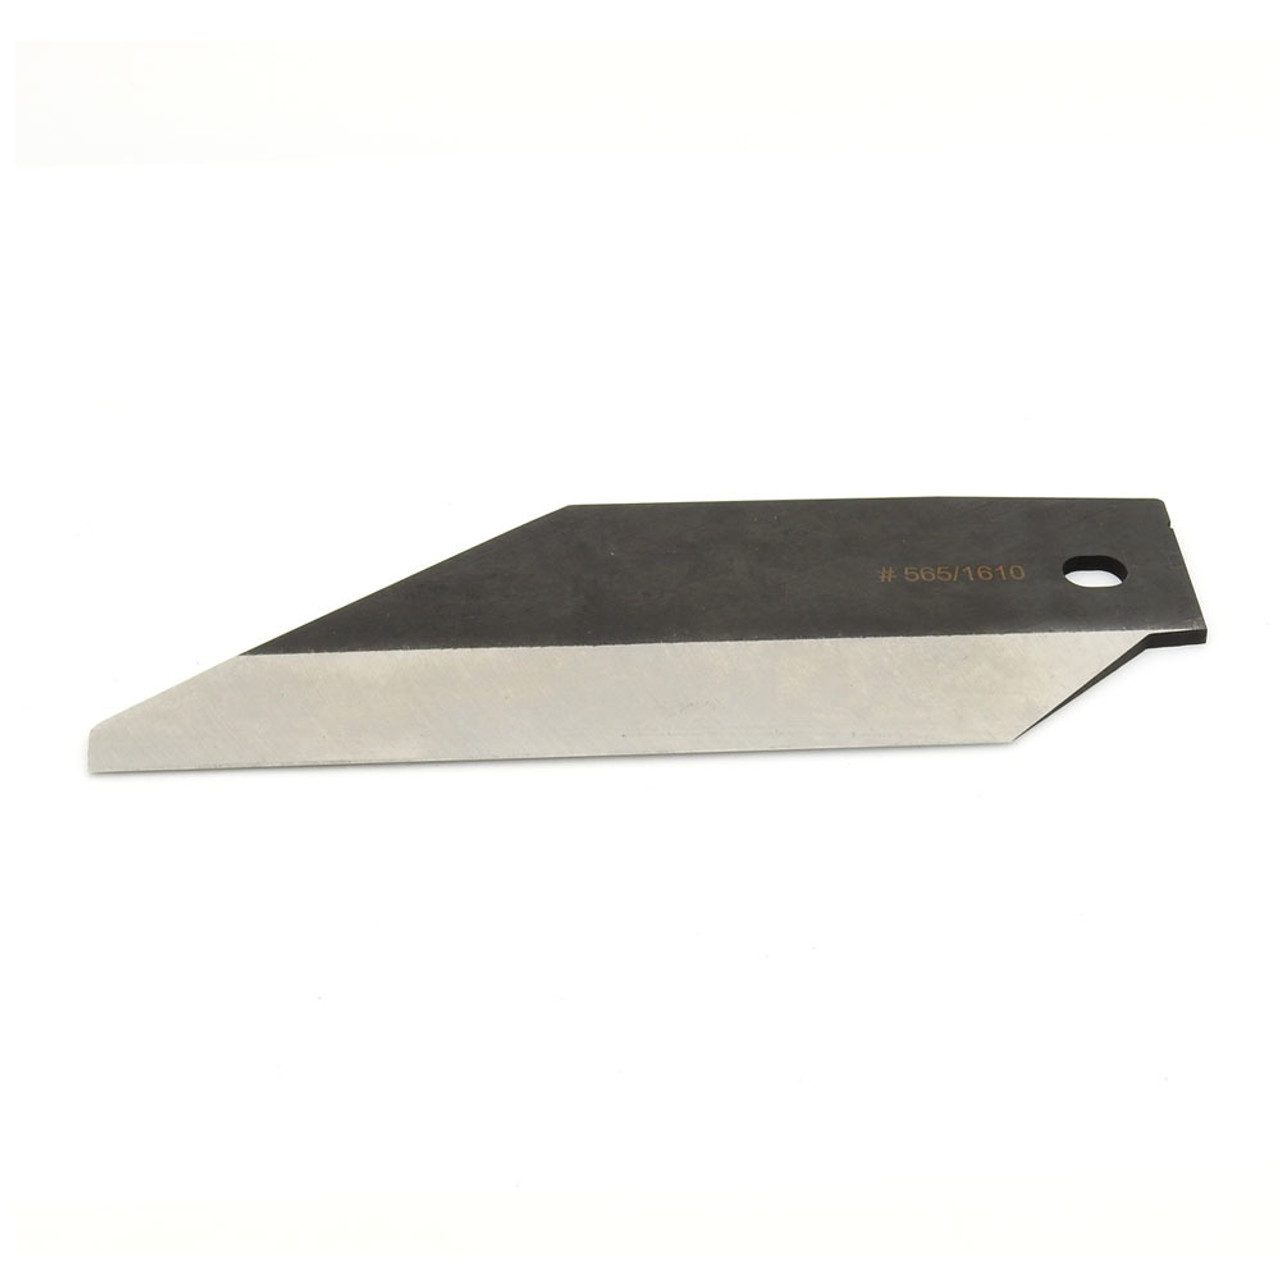 Replacement Blade for PREMIUM Wiring Duct Cutter (WDC-BNCH)